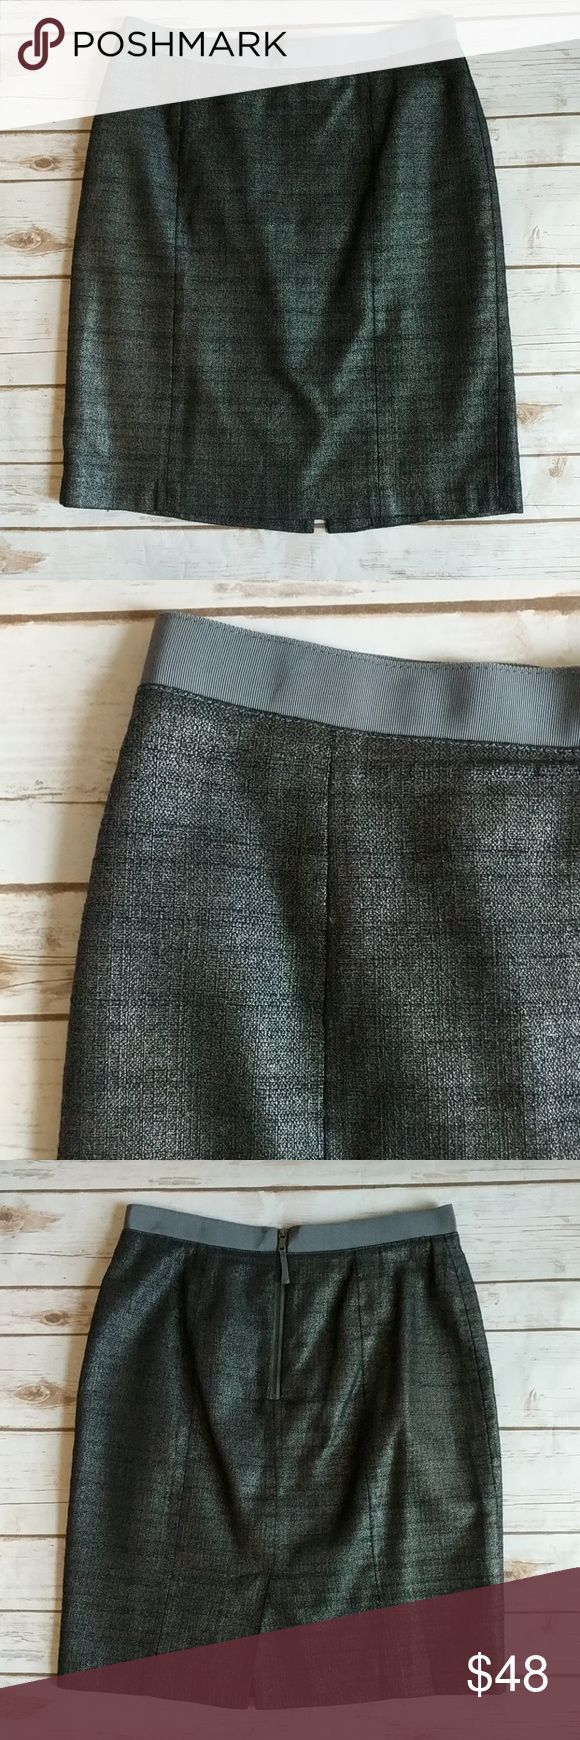 Ann Taylor sparkly metallic gray pencil skirt Simply classic skirt with a 2018 touch of bling! Back zip, ribbon waist band, small back slit. Beautifully lined with a black slip. Bought at Ann Taylor Loft.  Measures: waist 15-15.25 Length 21 Ann Taylor Skirts